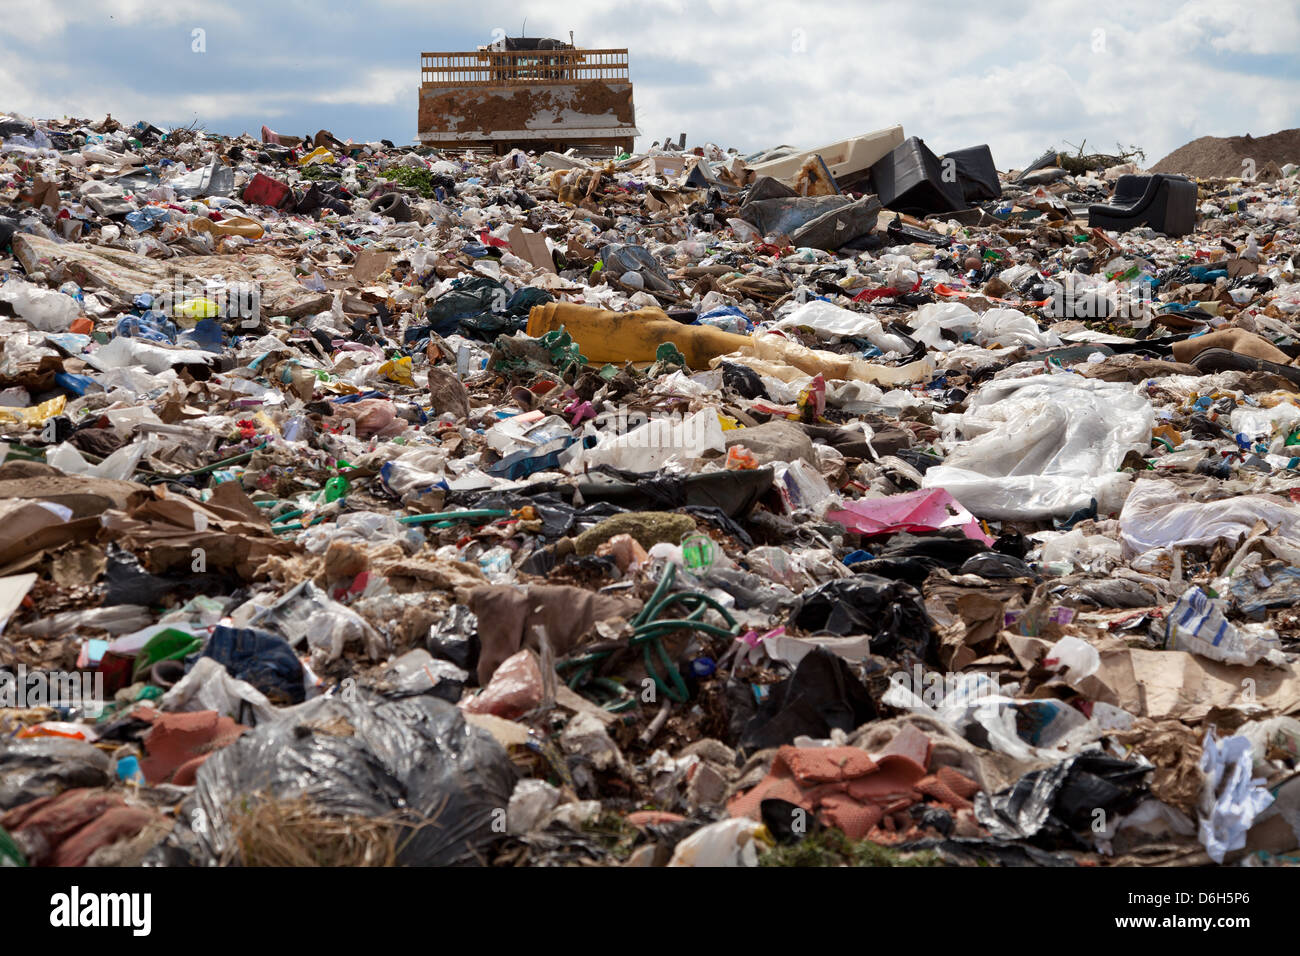 Truck managing garbage in a landfill site - Stock Image